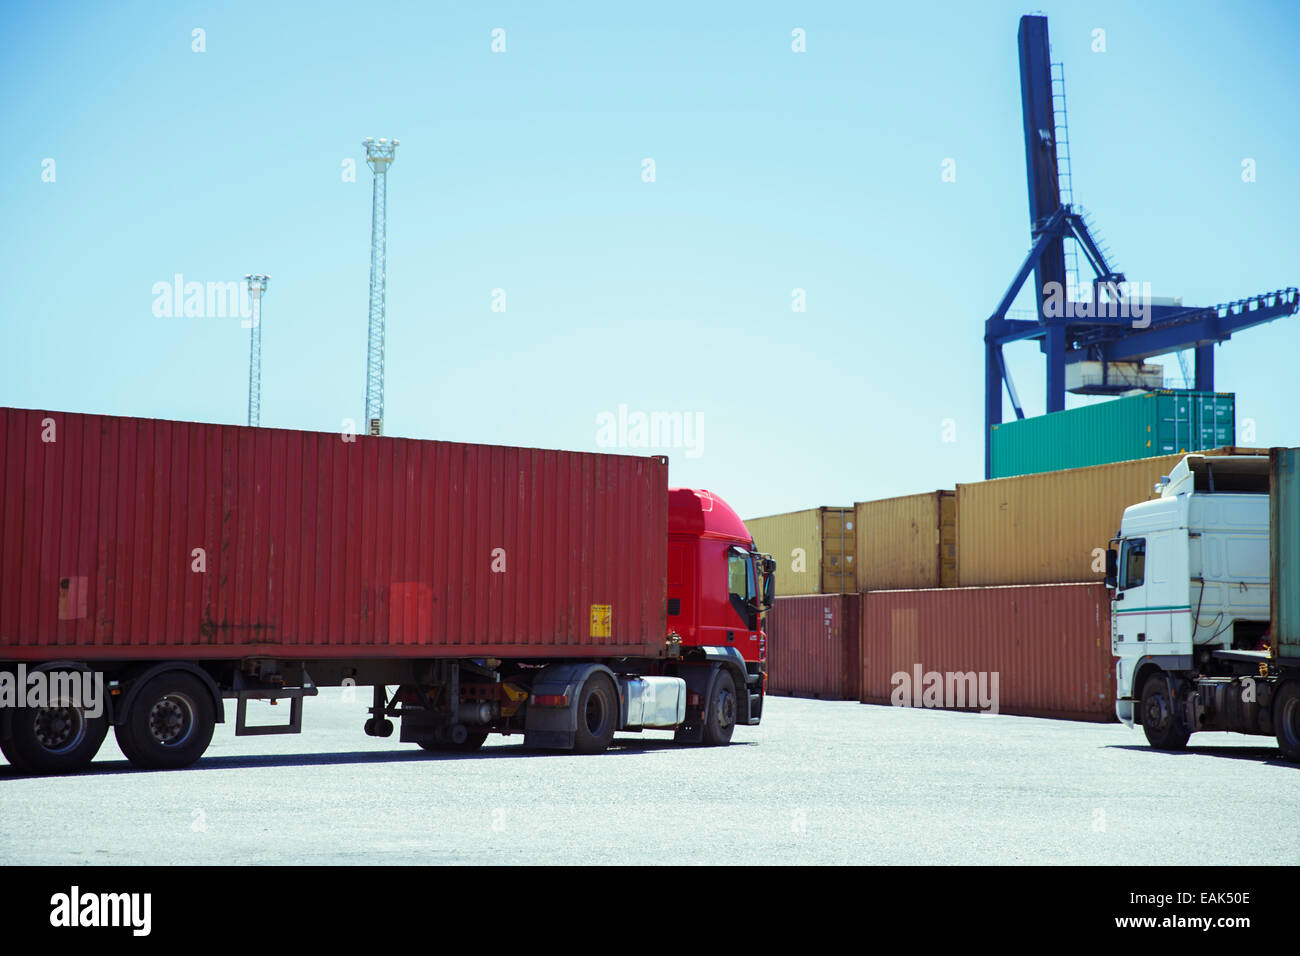 Truck carrying cargo container - Stock Image